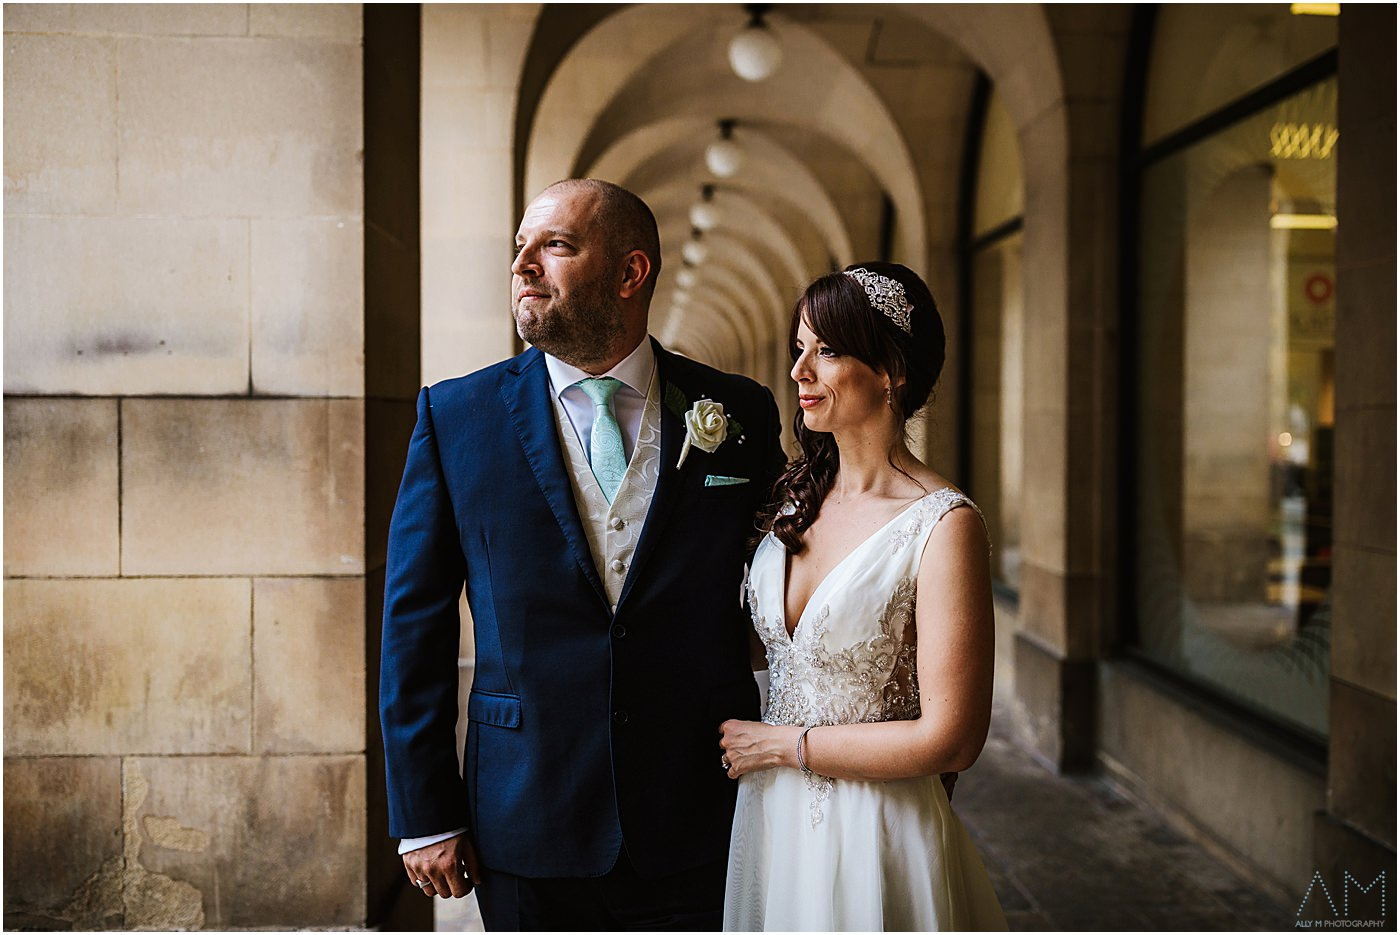 Wedding photography in Manchester city centre